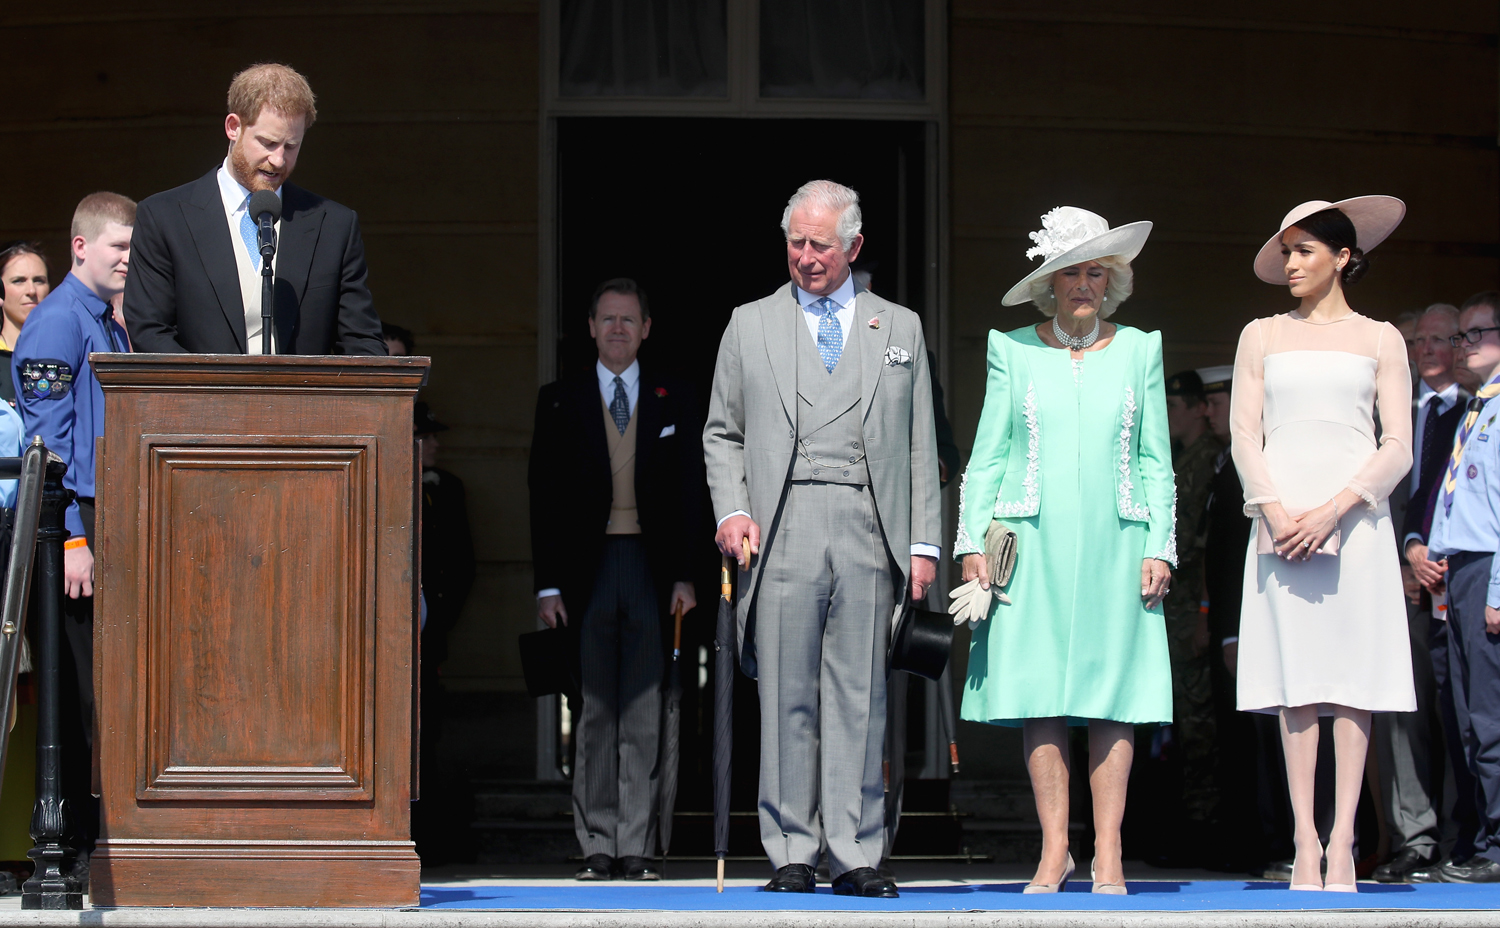 Prince Harry, Duke of Sussex gives a speech next to Prince Charles, Prince of Wales, Camilla, Duchess of Cornwall and Meghan, Duchess of Sussex